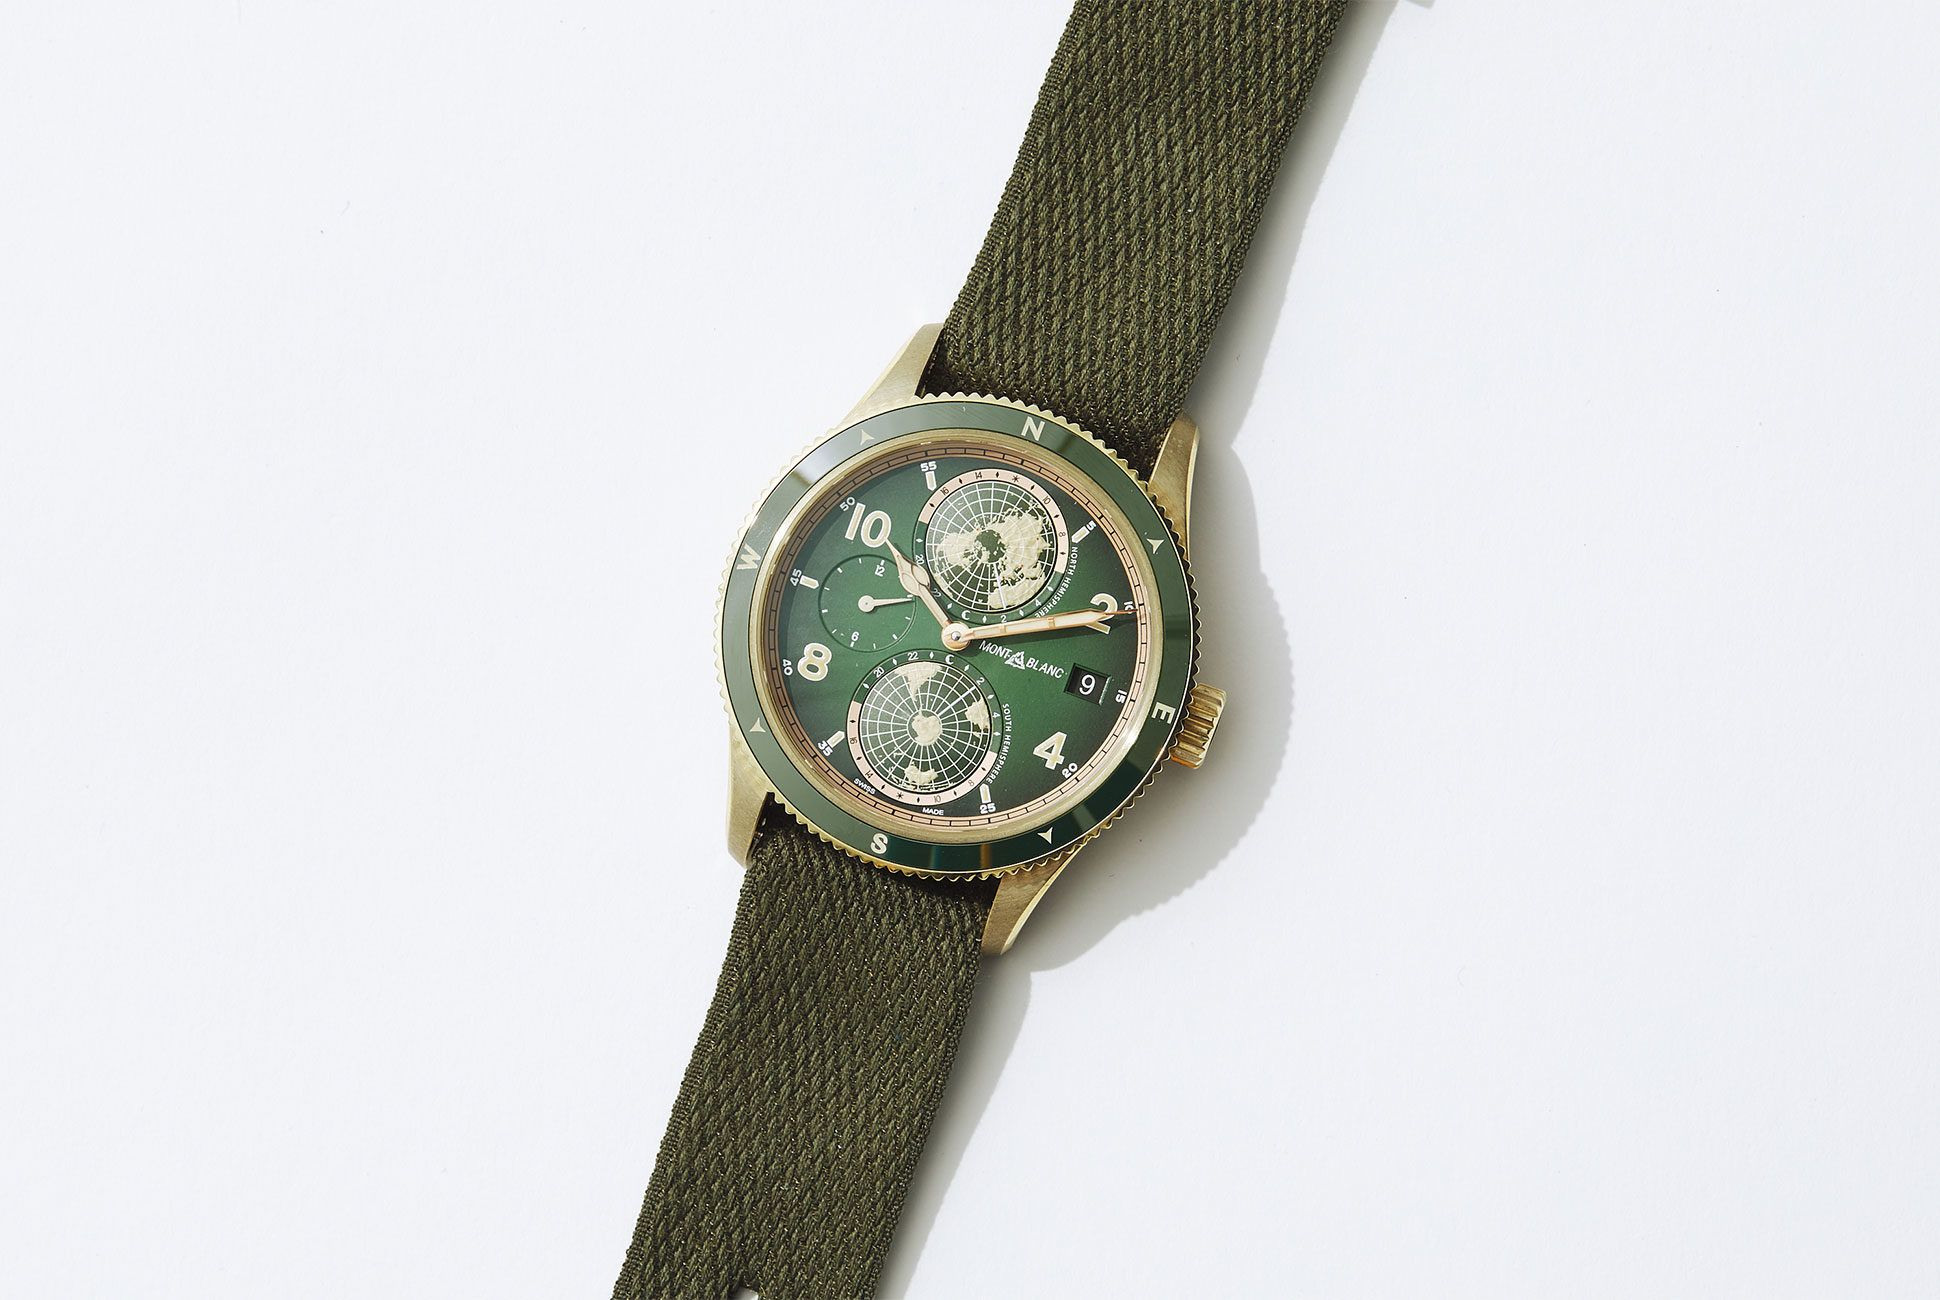 Everything-You-Need-to-Reconnect-With-Nature-Gear-Patrol-watch-slide-1